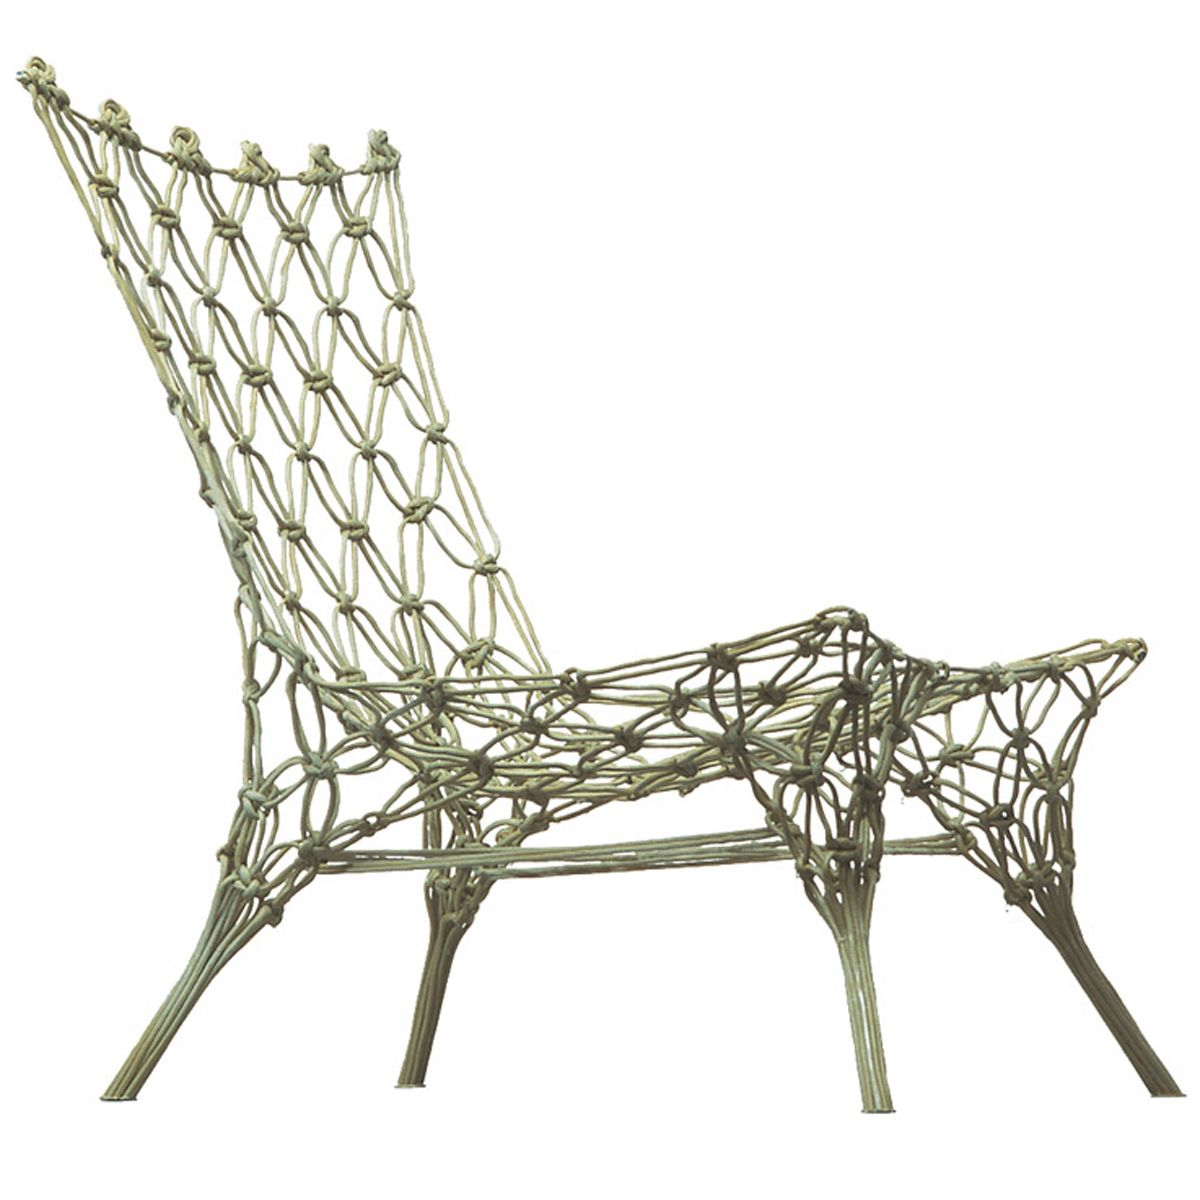 Cappellini - Knotted Chair | Möbel, TES und Design